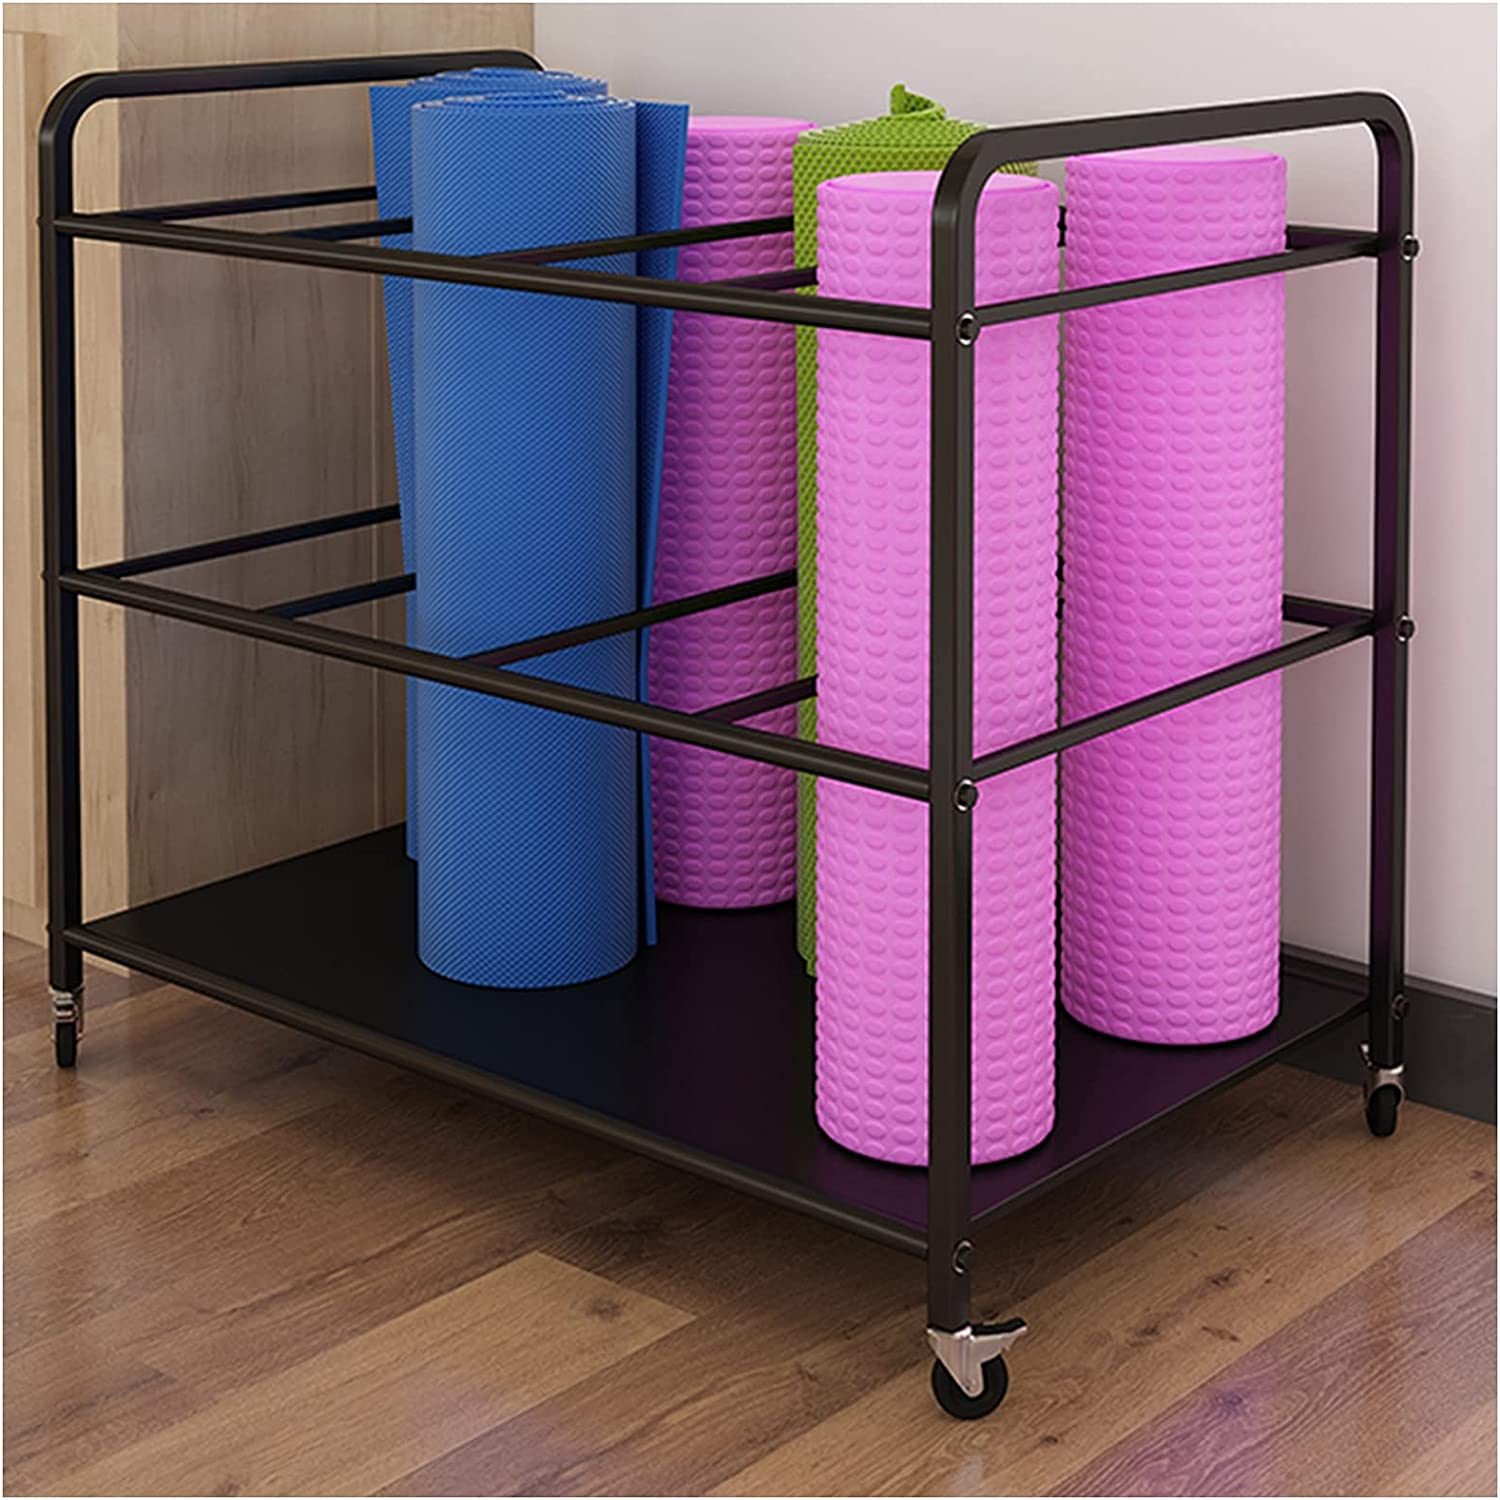 Max 77% OFF Extra Large Rolling Yoga Mat Storage Wheels Safety and trust Lockable with 2 Cart